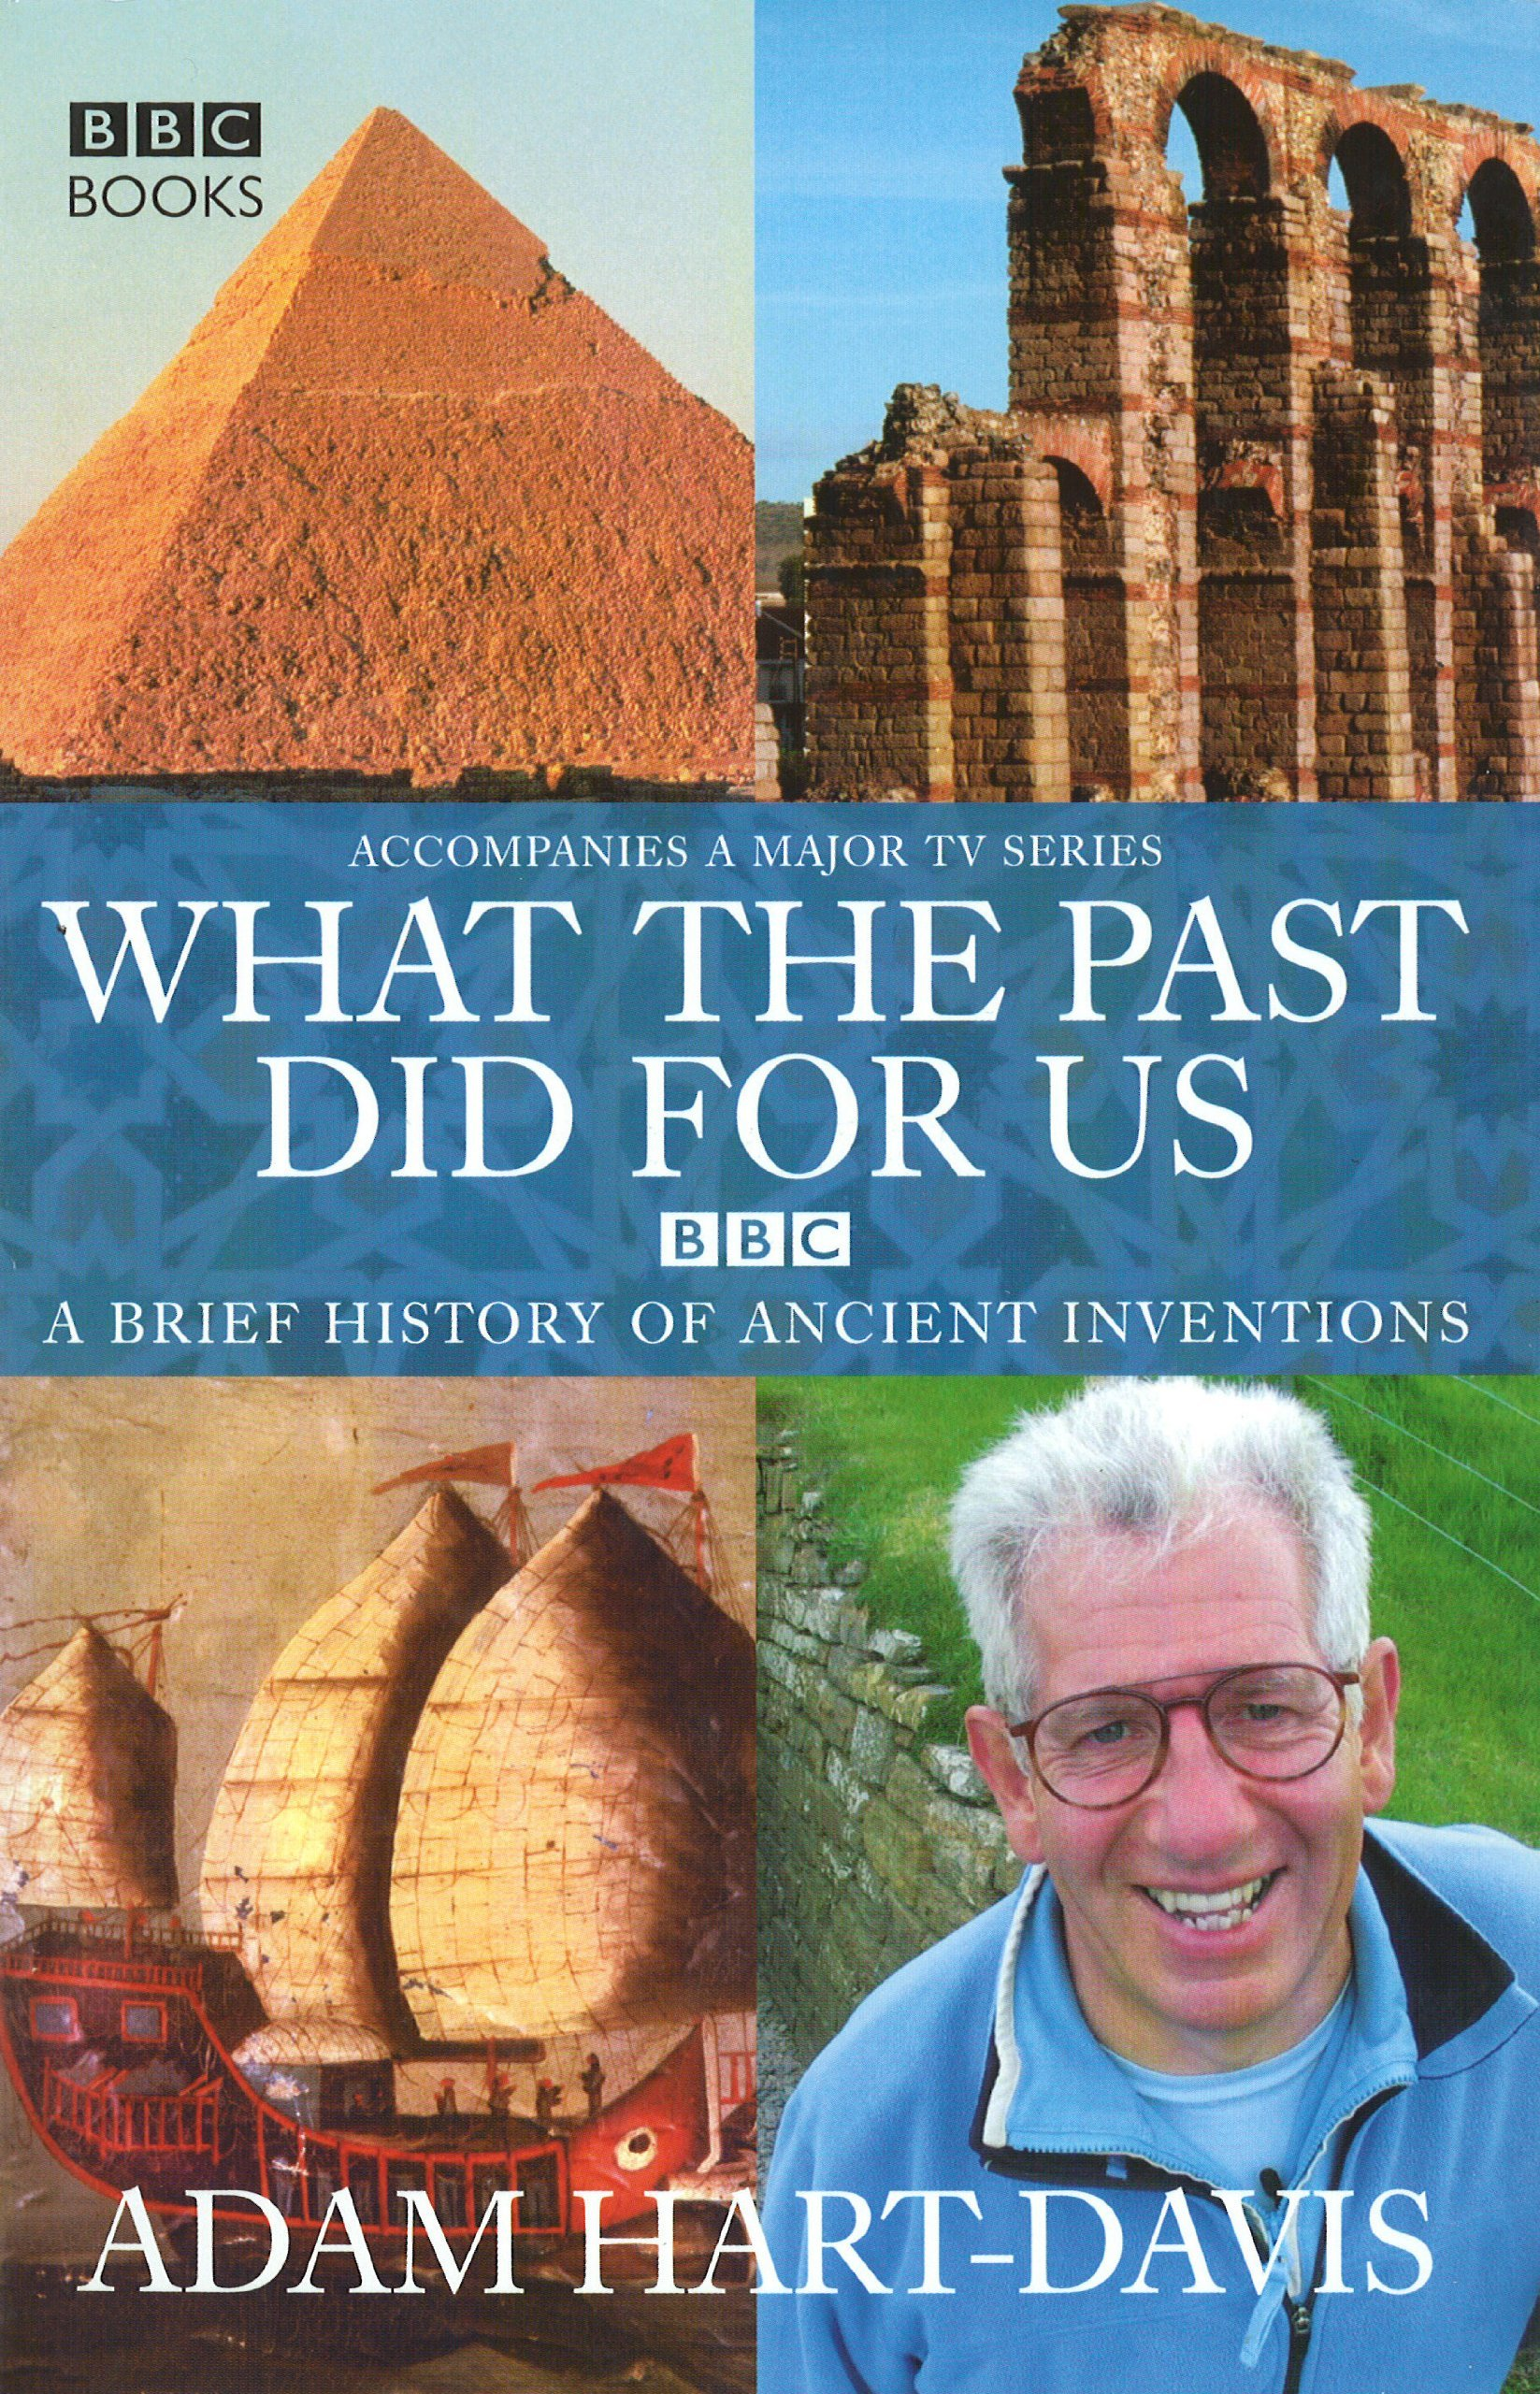 Download What the Past Did for Us: A Brief History of Ancient Inventions by Adam Hart-Davis (14-Oct-2004) Hardcover ebook